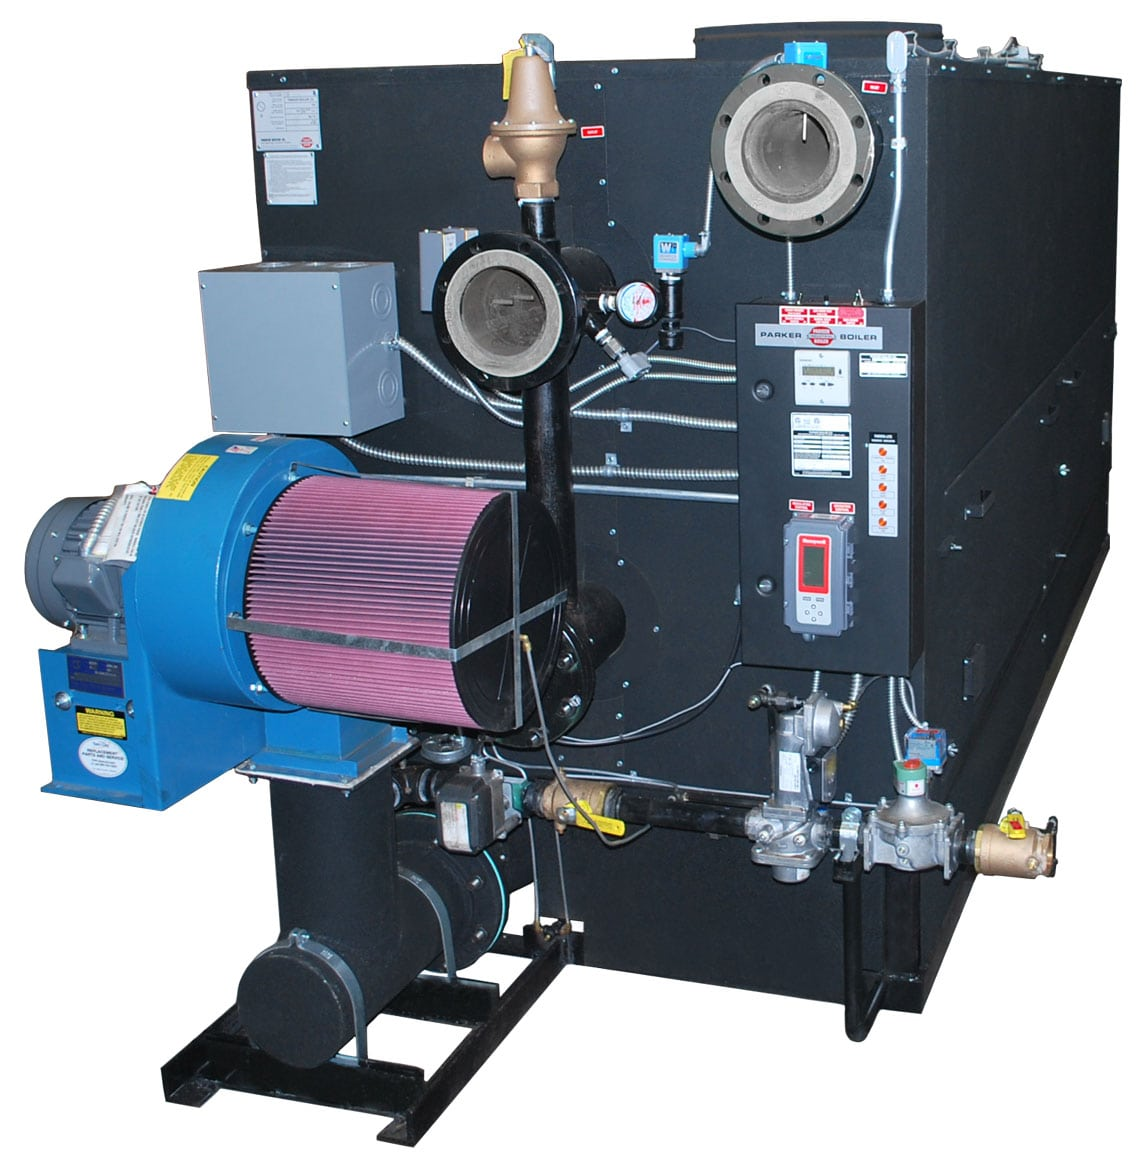 hot water boilers parker boiler co industrial \u0026 commercial boilers Boilers Wiring Diagrams and Manuals key features \u0026 advantages